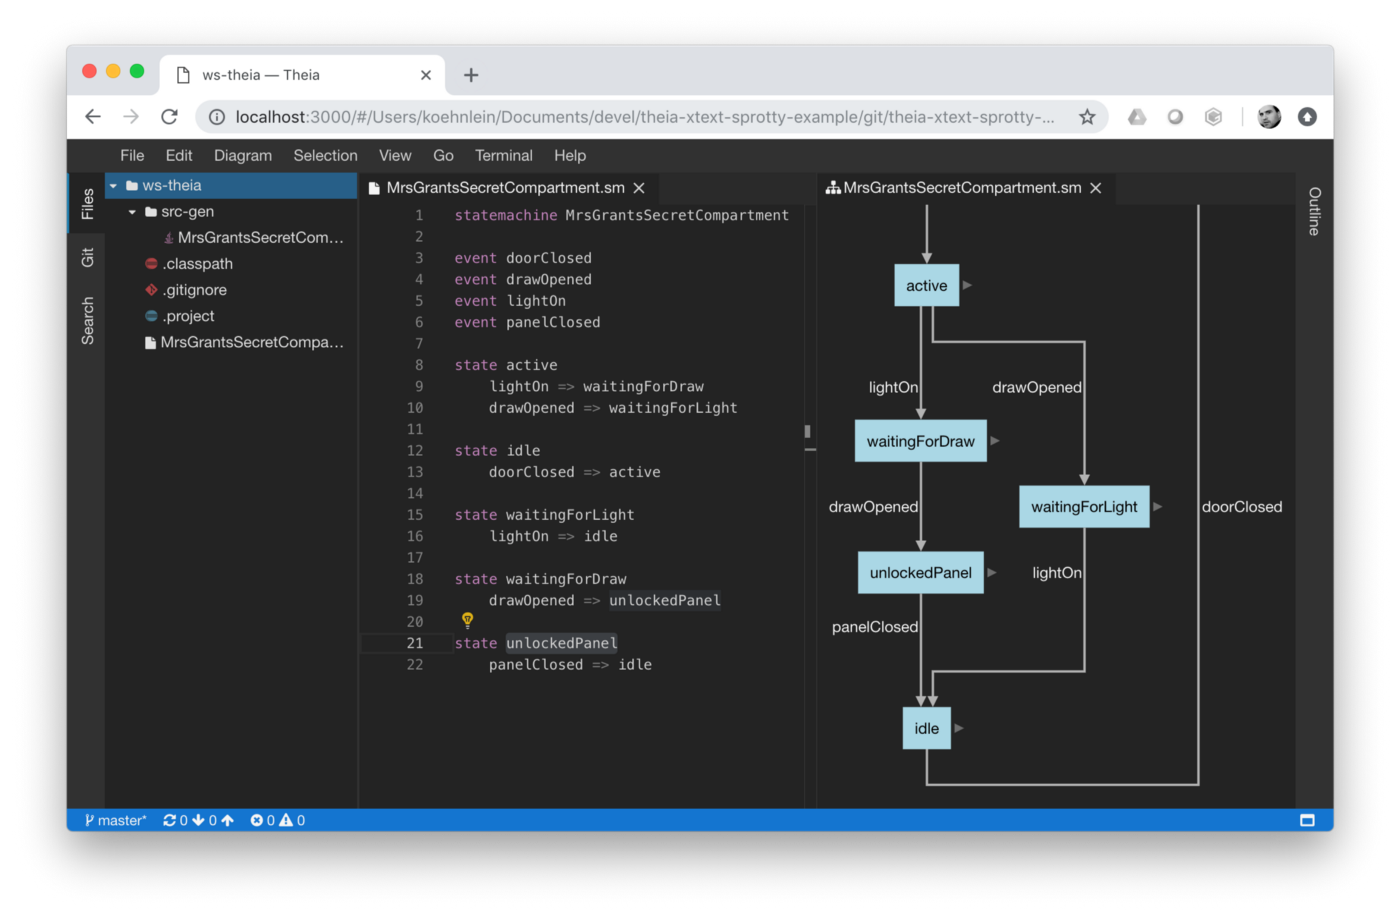 the theia cloud-ide running a dsl editor with code-generator and a  visualization